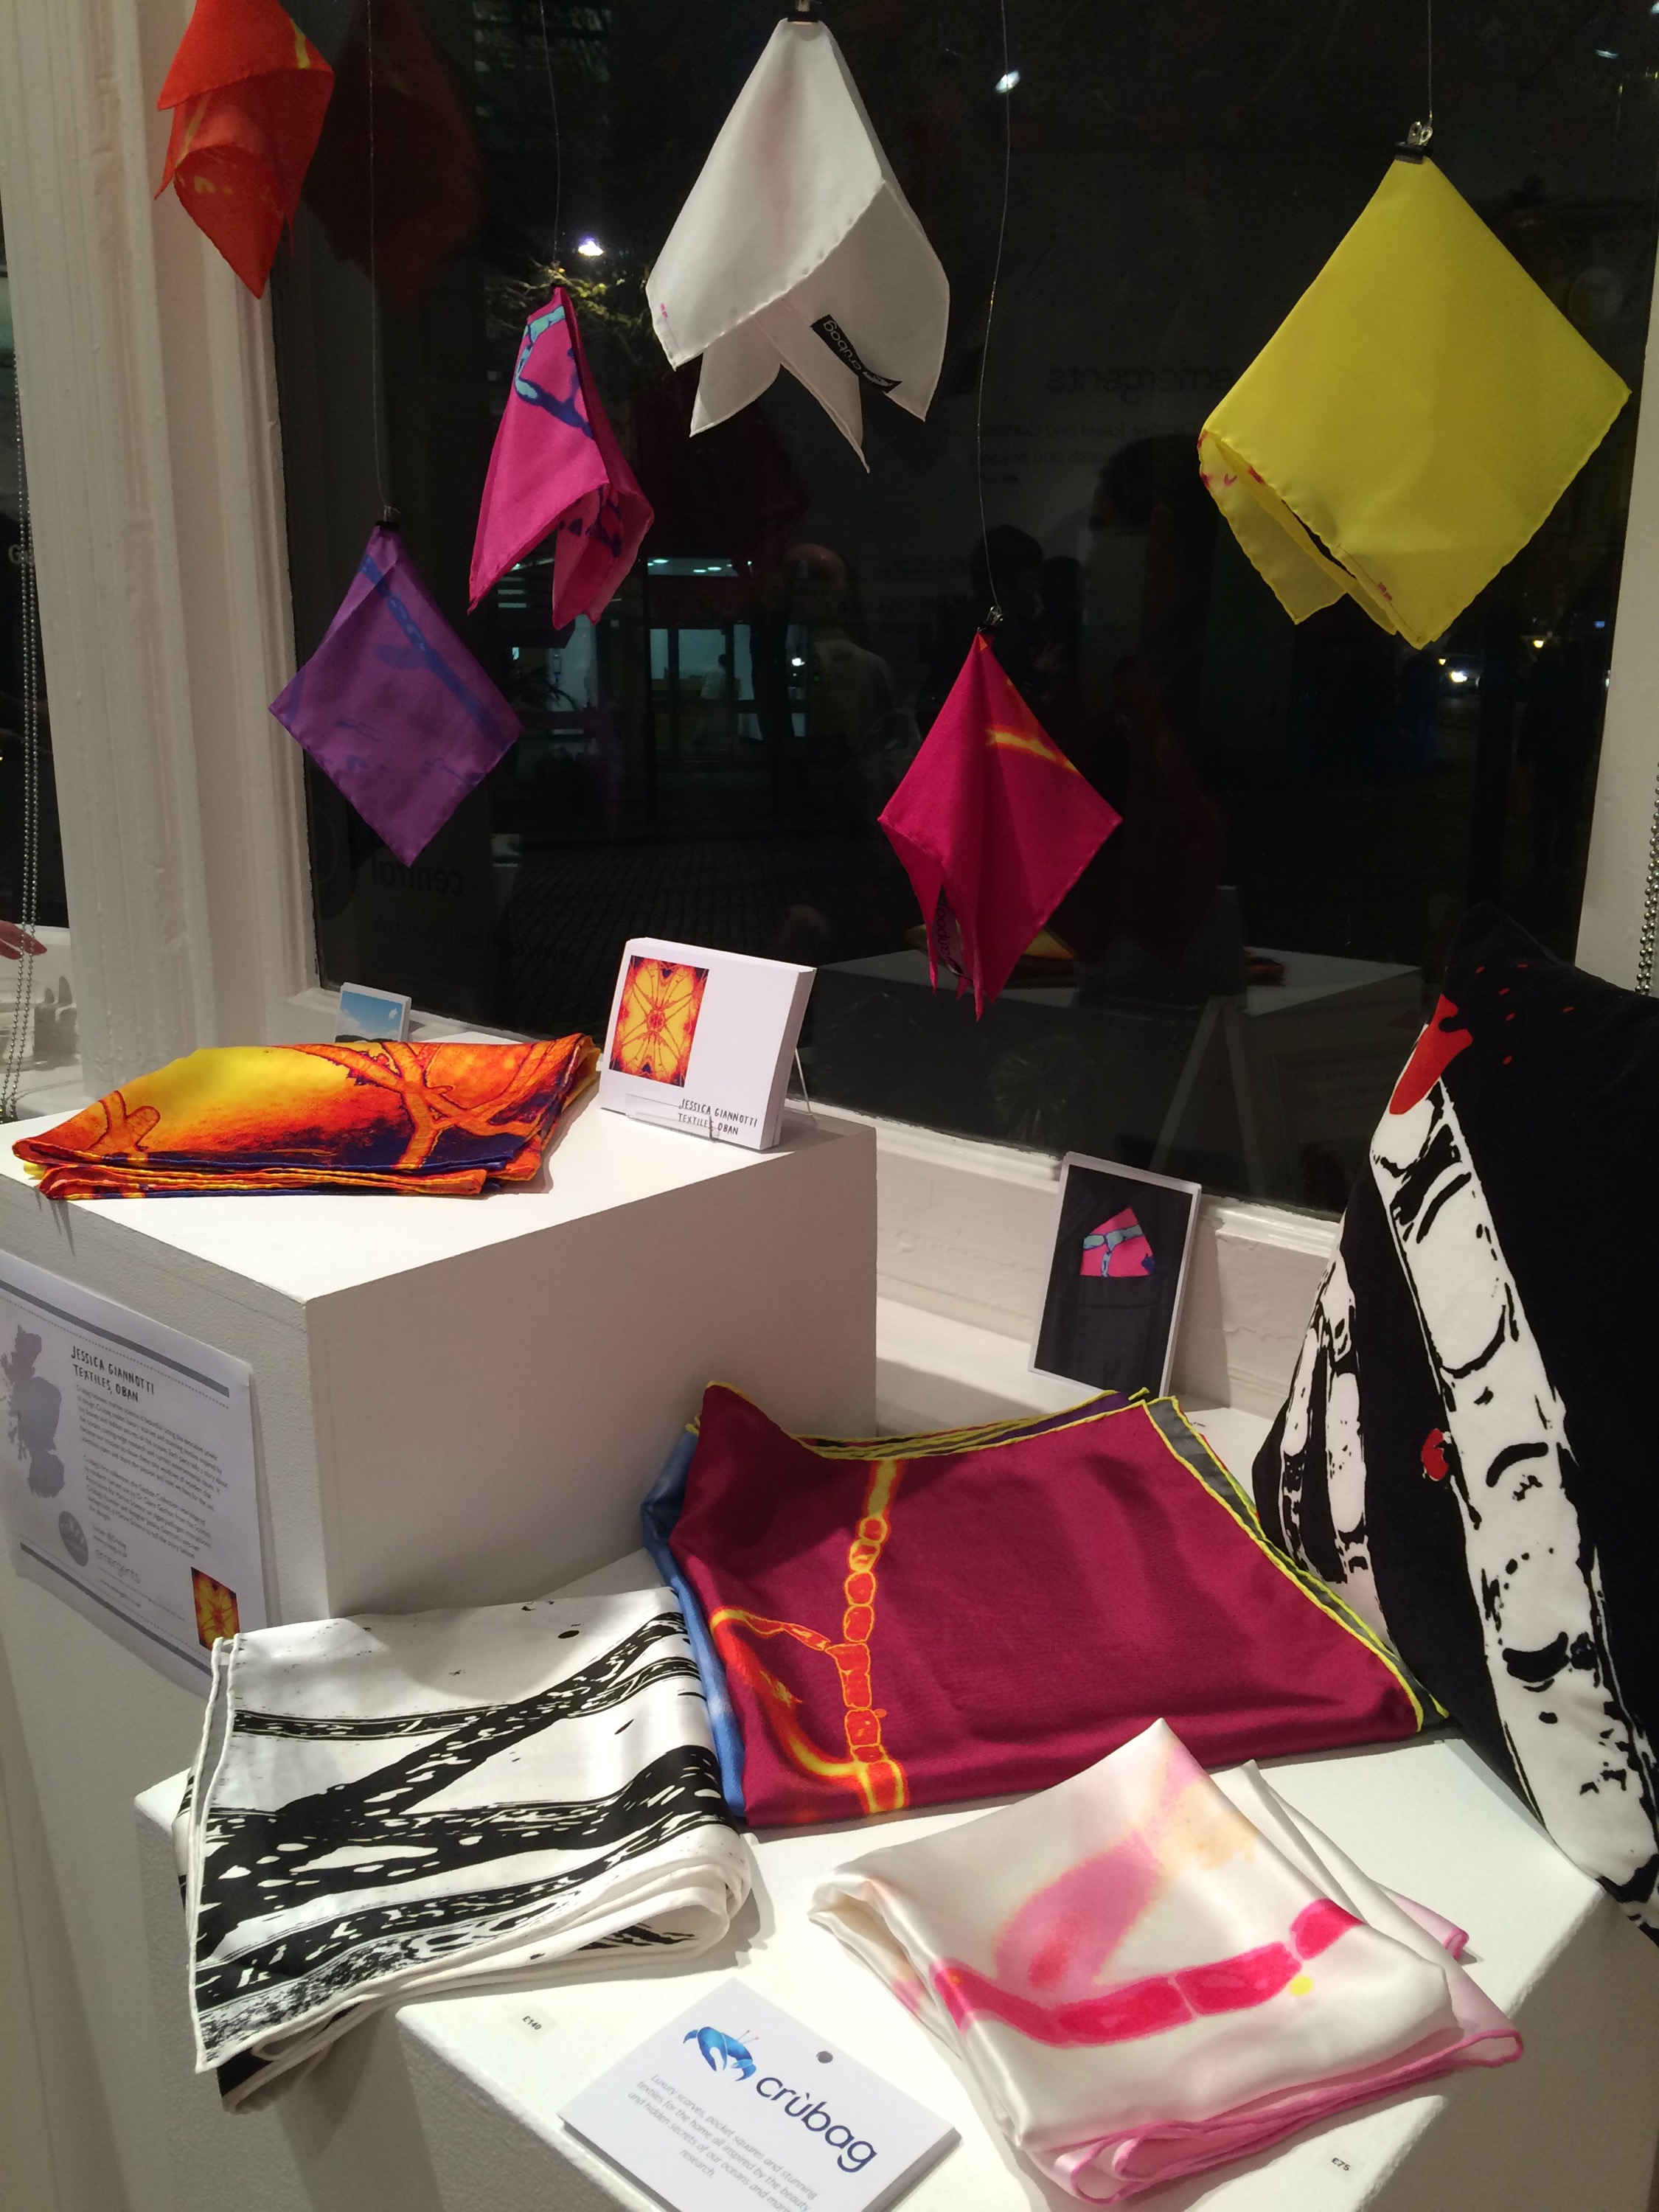 Crùbag's display at Craft Central